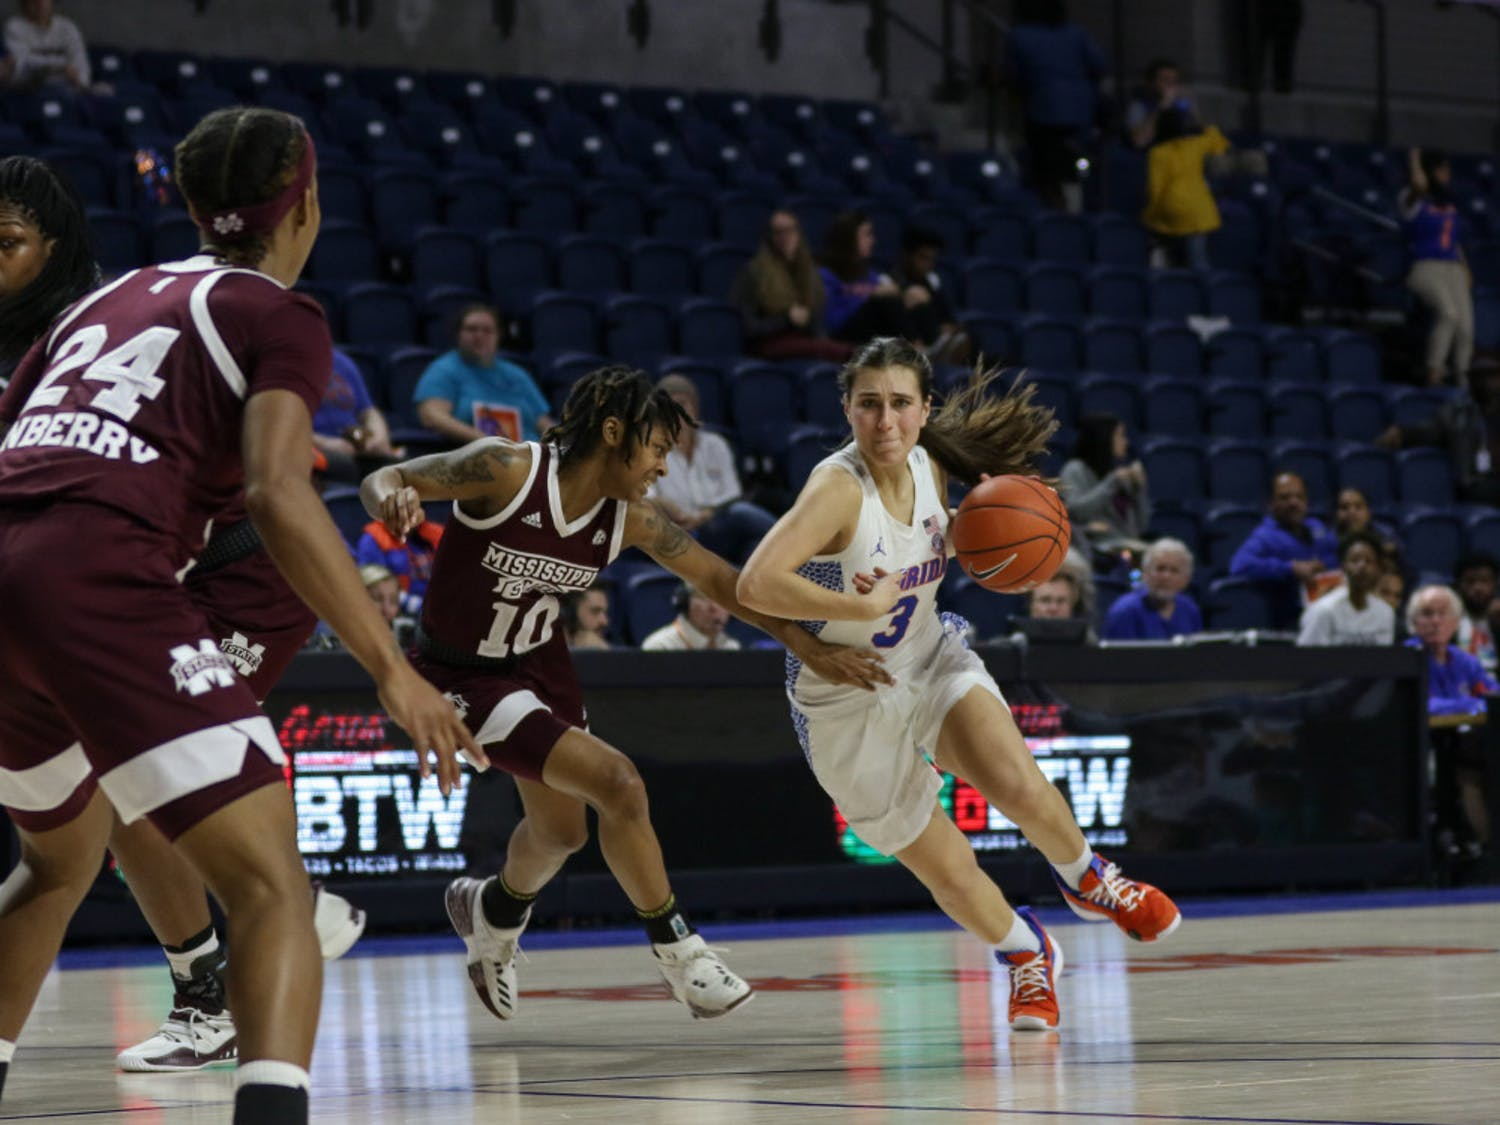 UF guard Funda Nakkasoglu scored 14 points in Florida's 90-42 loss to Mississippi State on Thursday night. She was the only Gator to score in the first quarter.